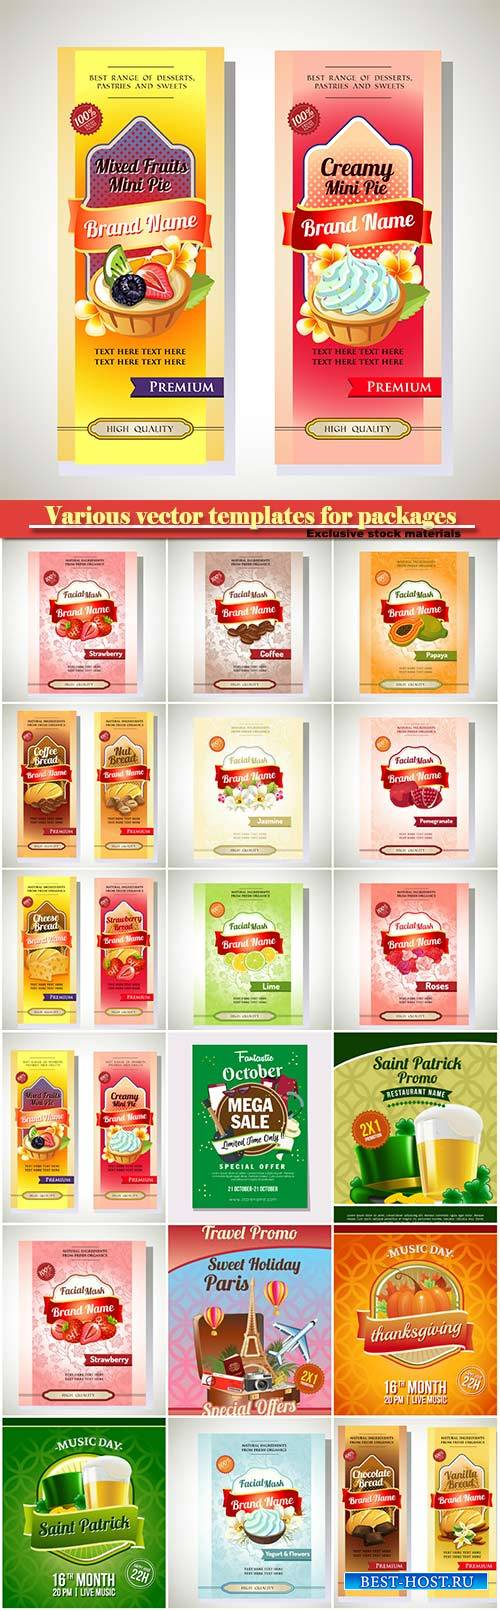 Various vector templates for packages